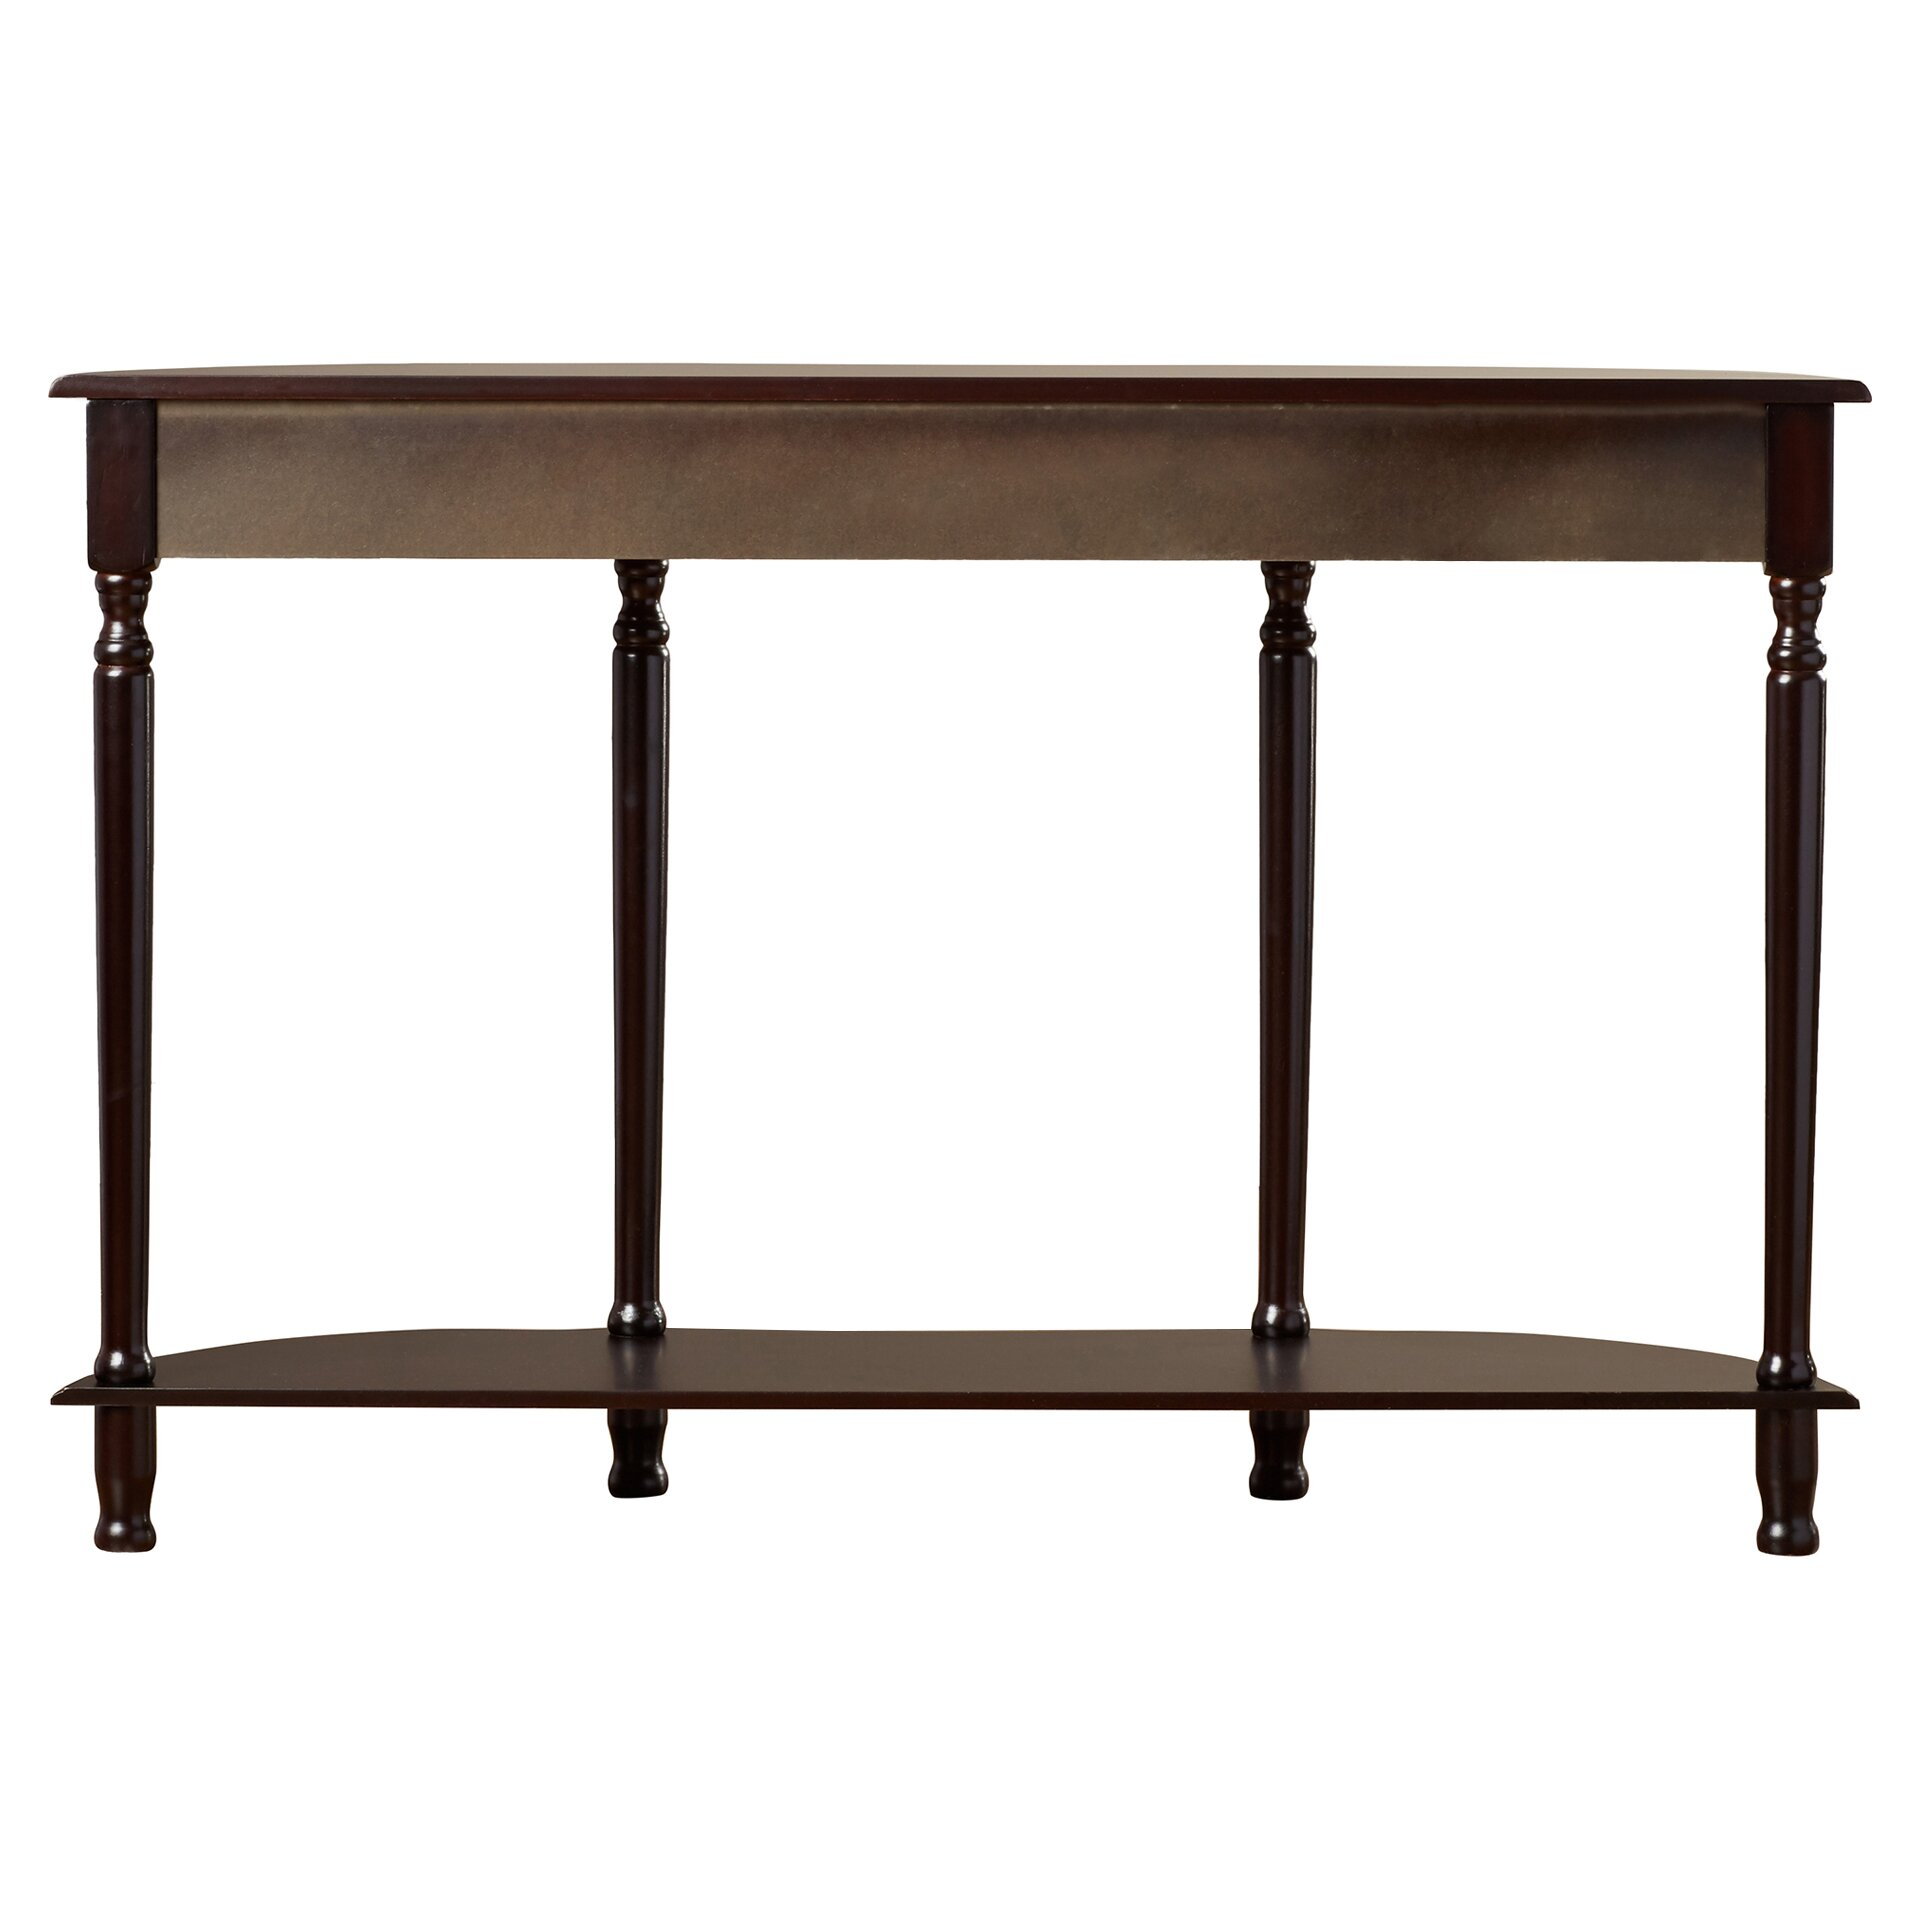 Alcott Hill Abbottsmoor Console Table With Turned Legs